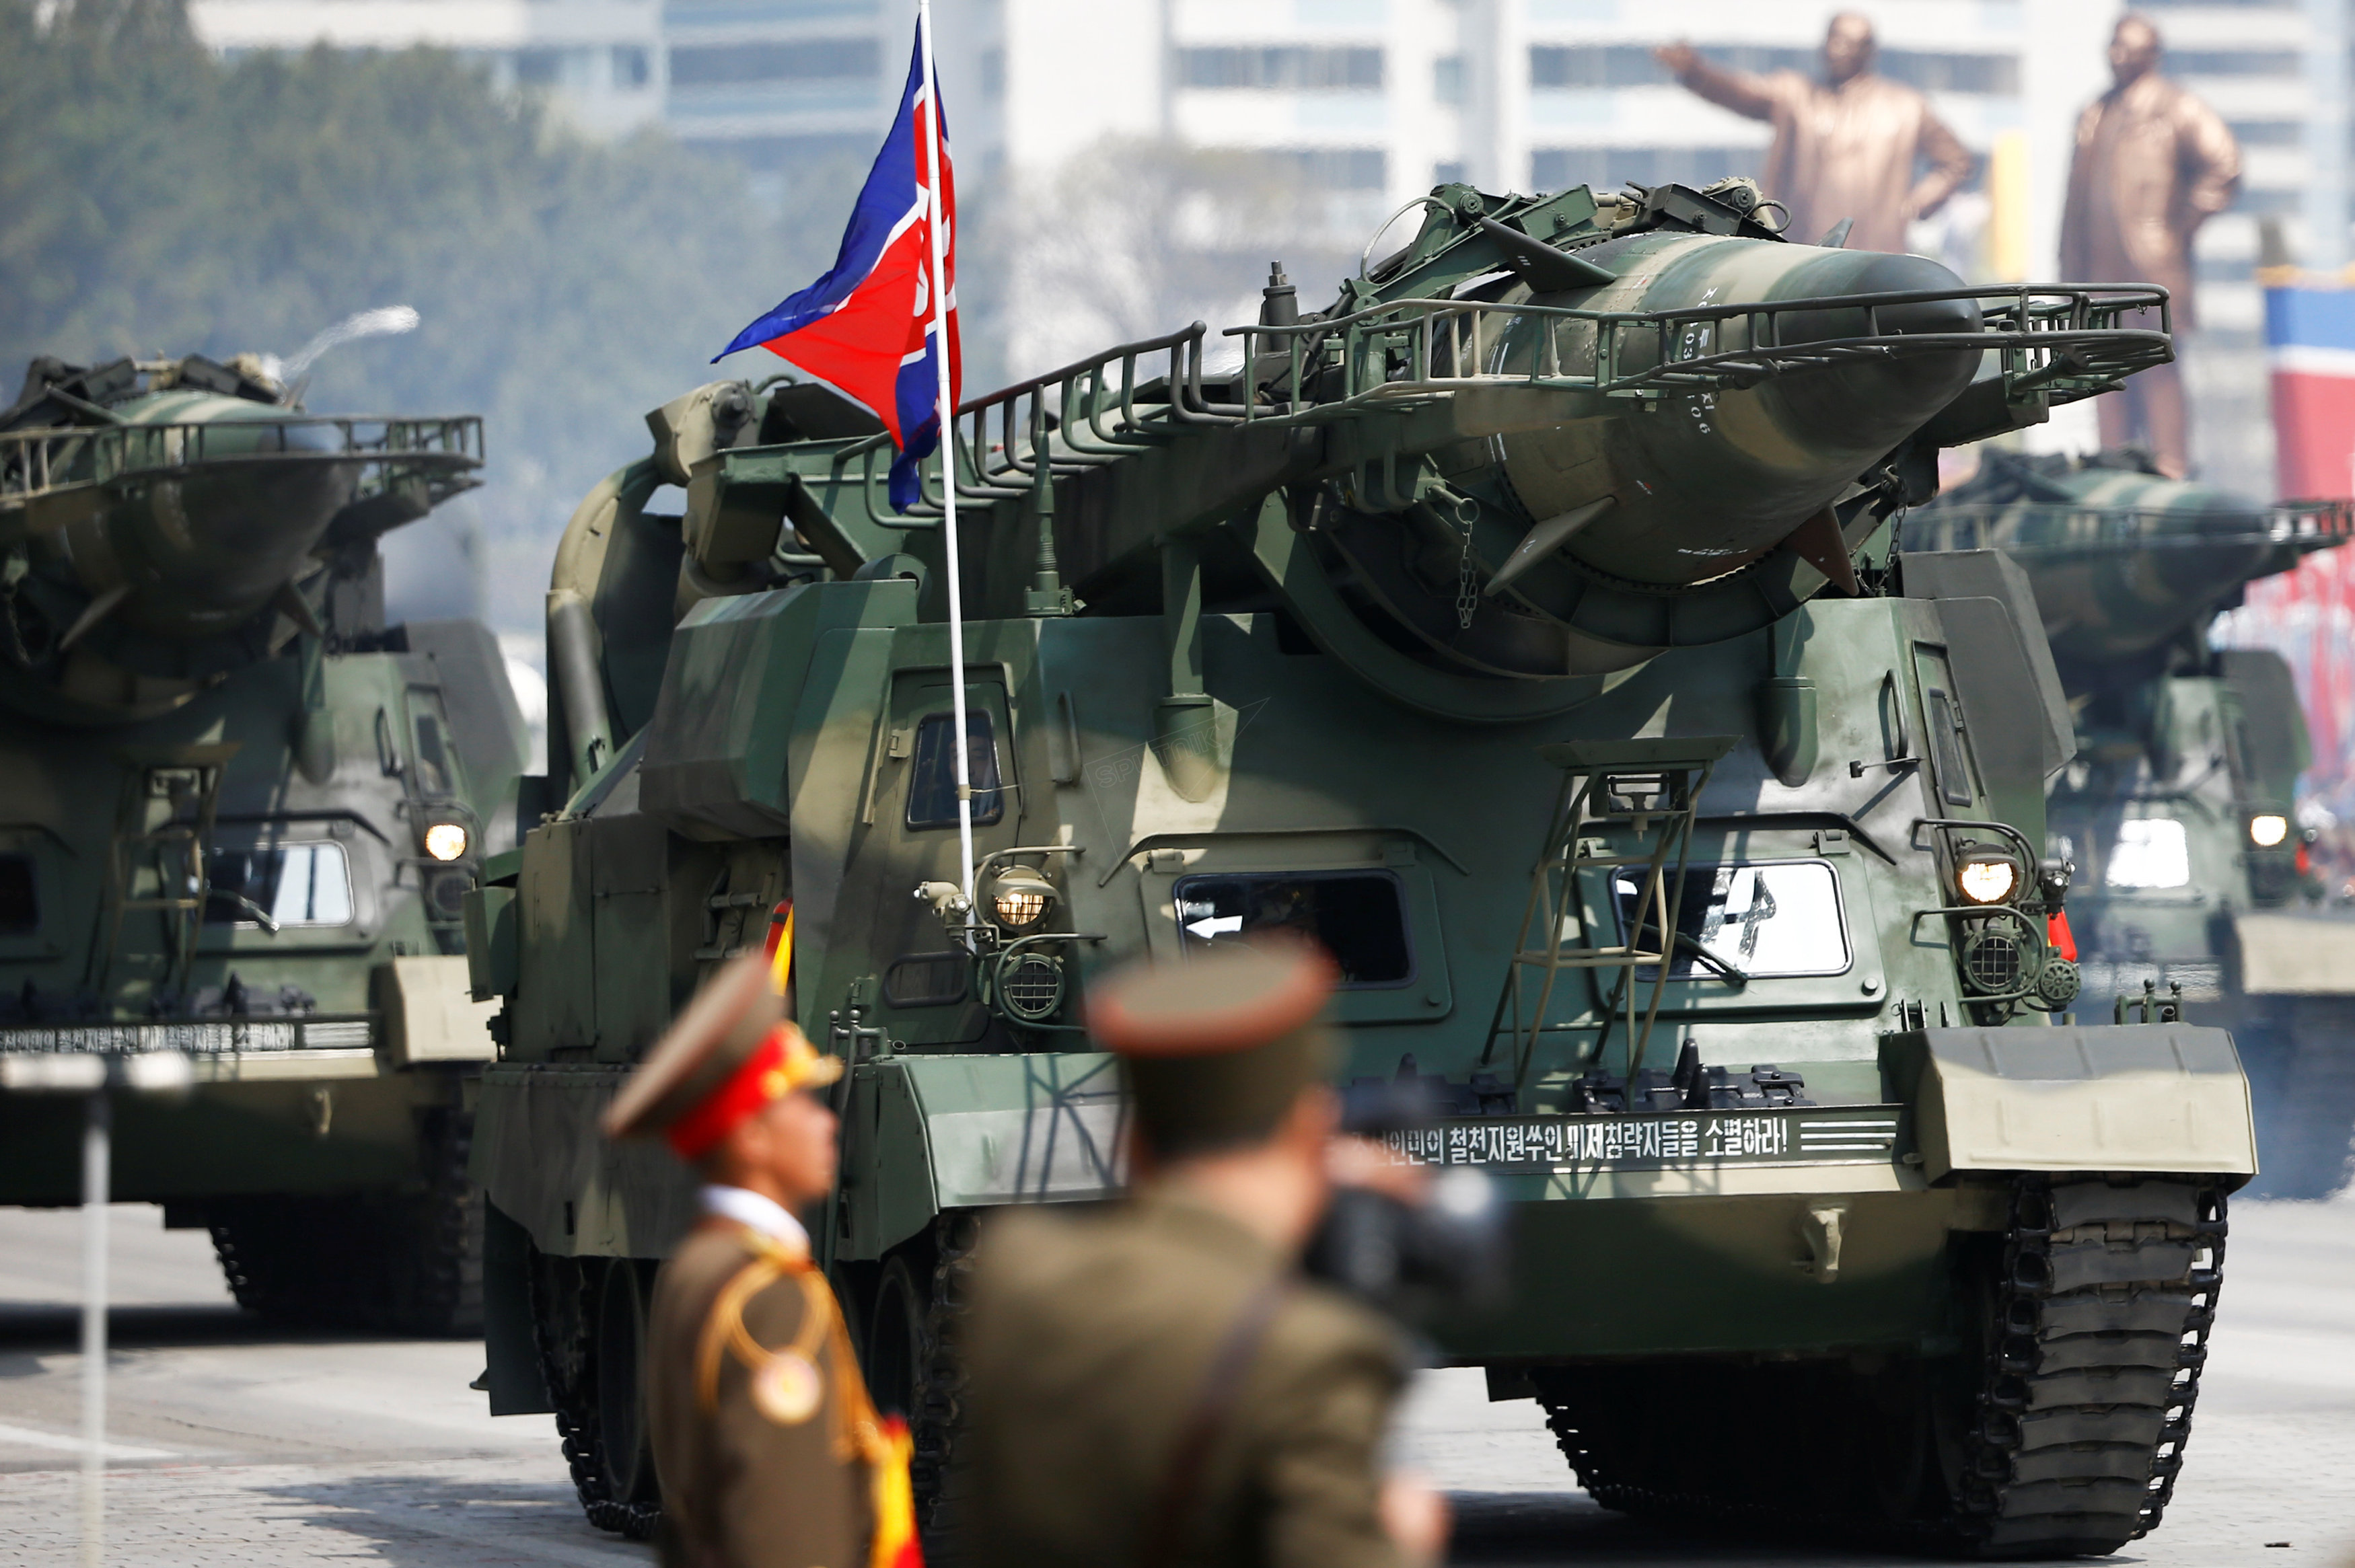 Missiles looking similar to Soviet Scud-As are driven past the stand with North Korean leader Kim Jong Un and other high ranking officials during a military parade in Pyongyang, April 15, 2017.